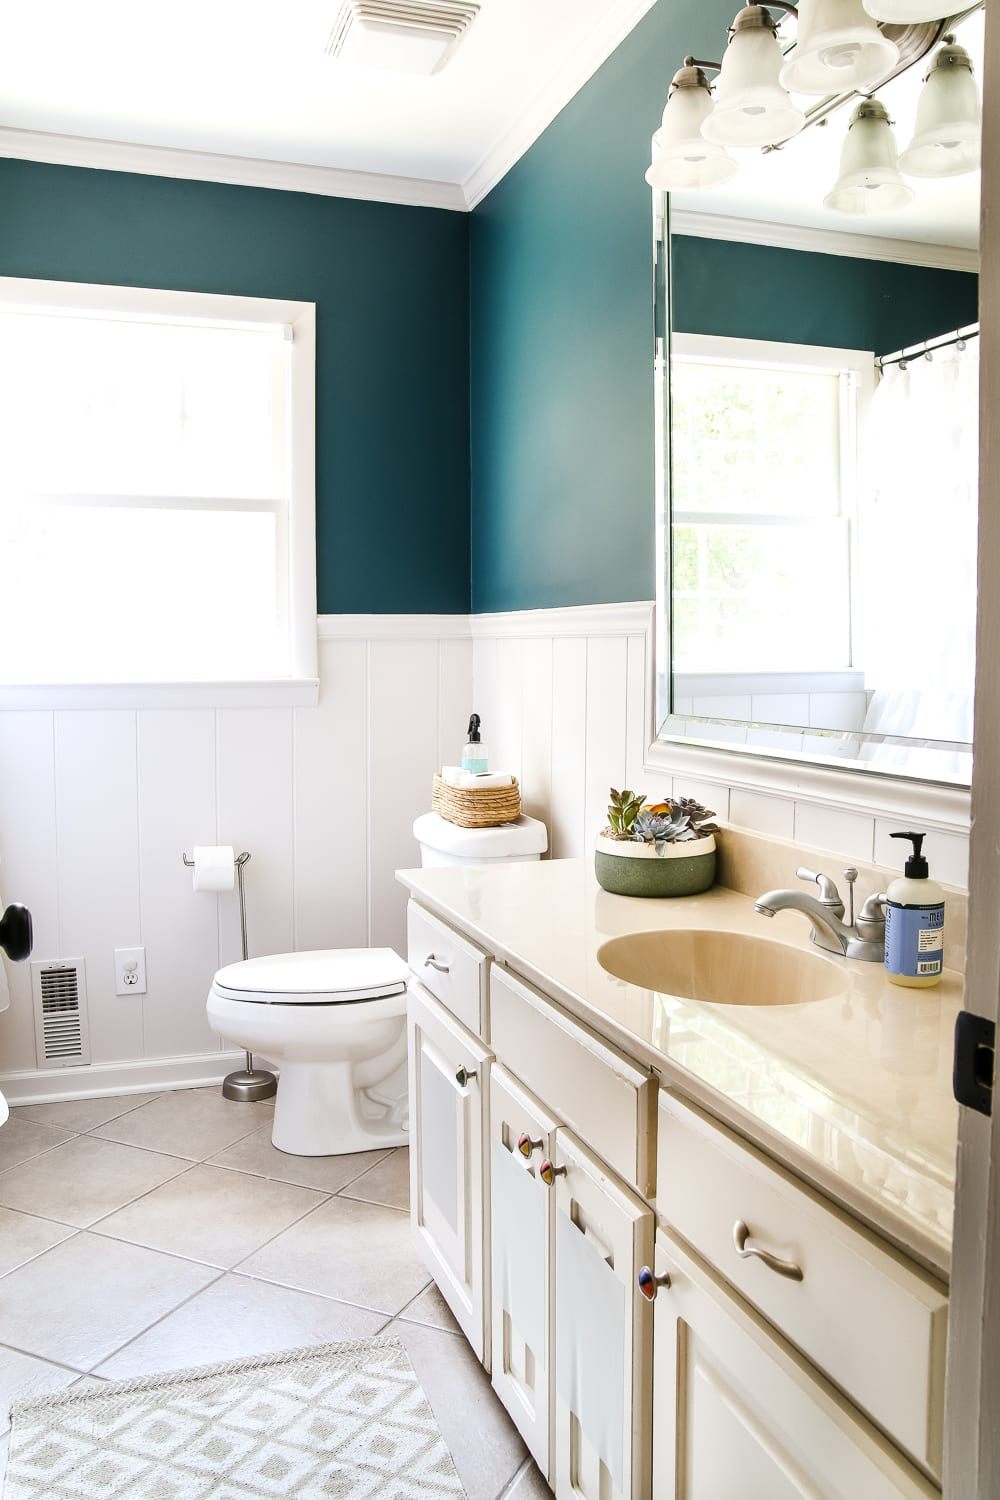 teal painted bathroom makeover bless 39 er house